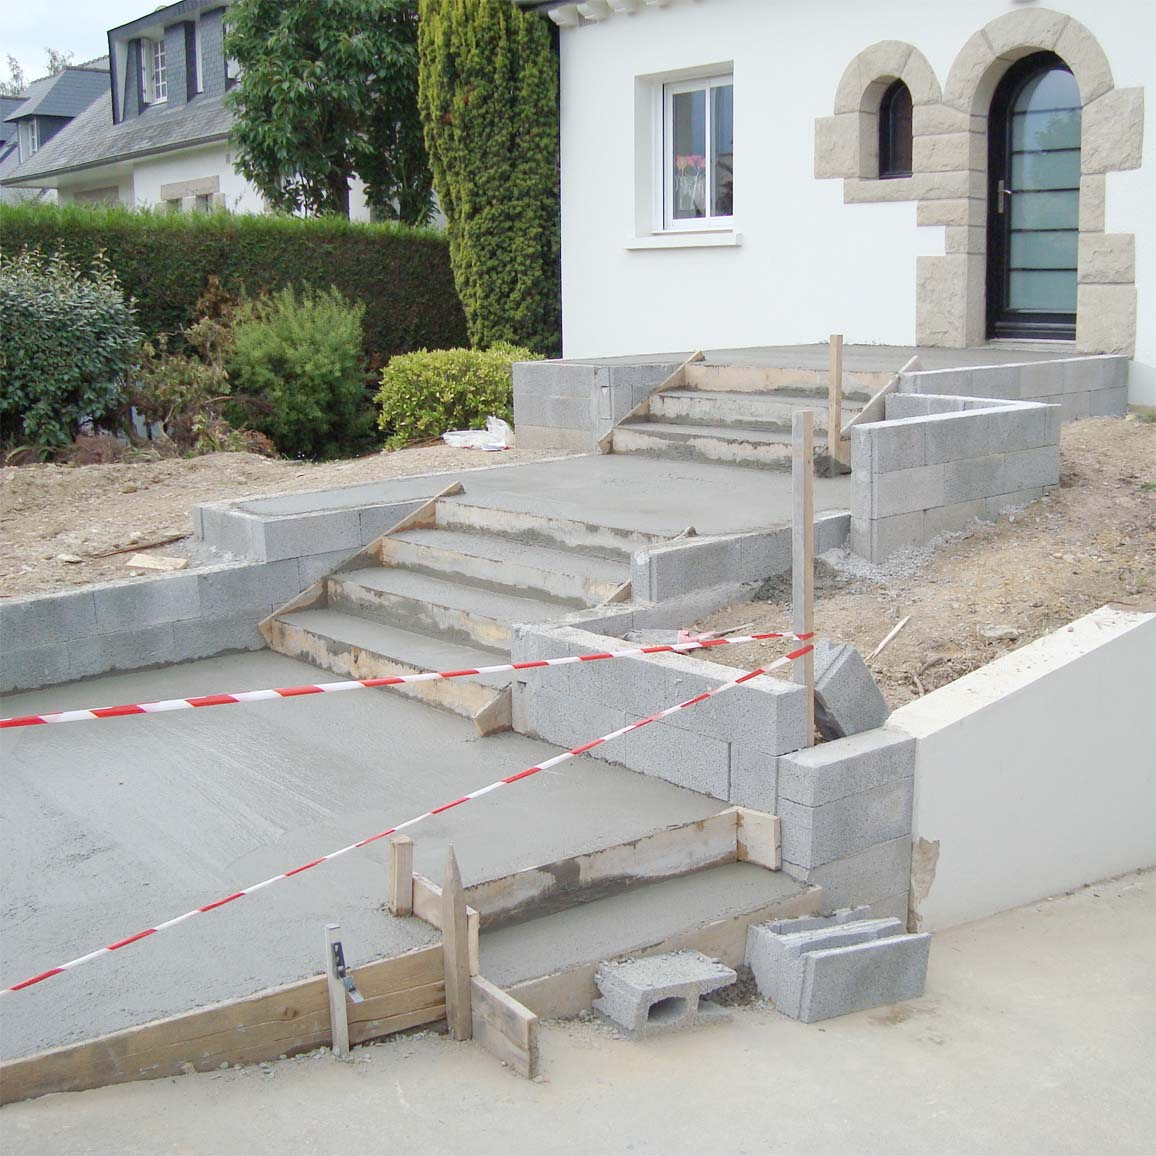 Fondation Terrasse Beton Terrasse En Bton Dsactiv 12 Messages Comment Raliser Une